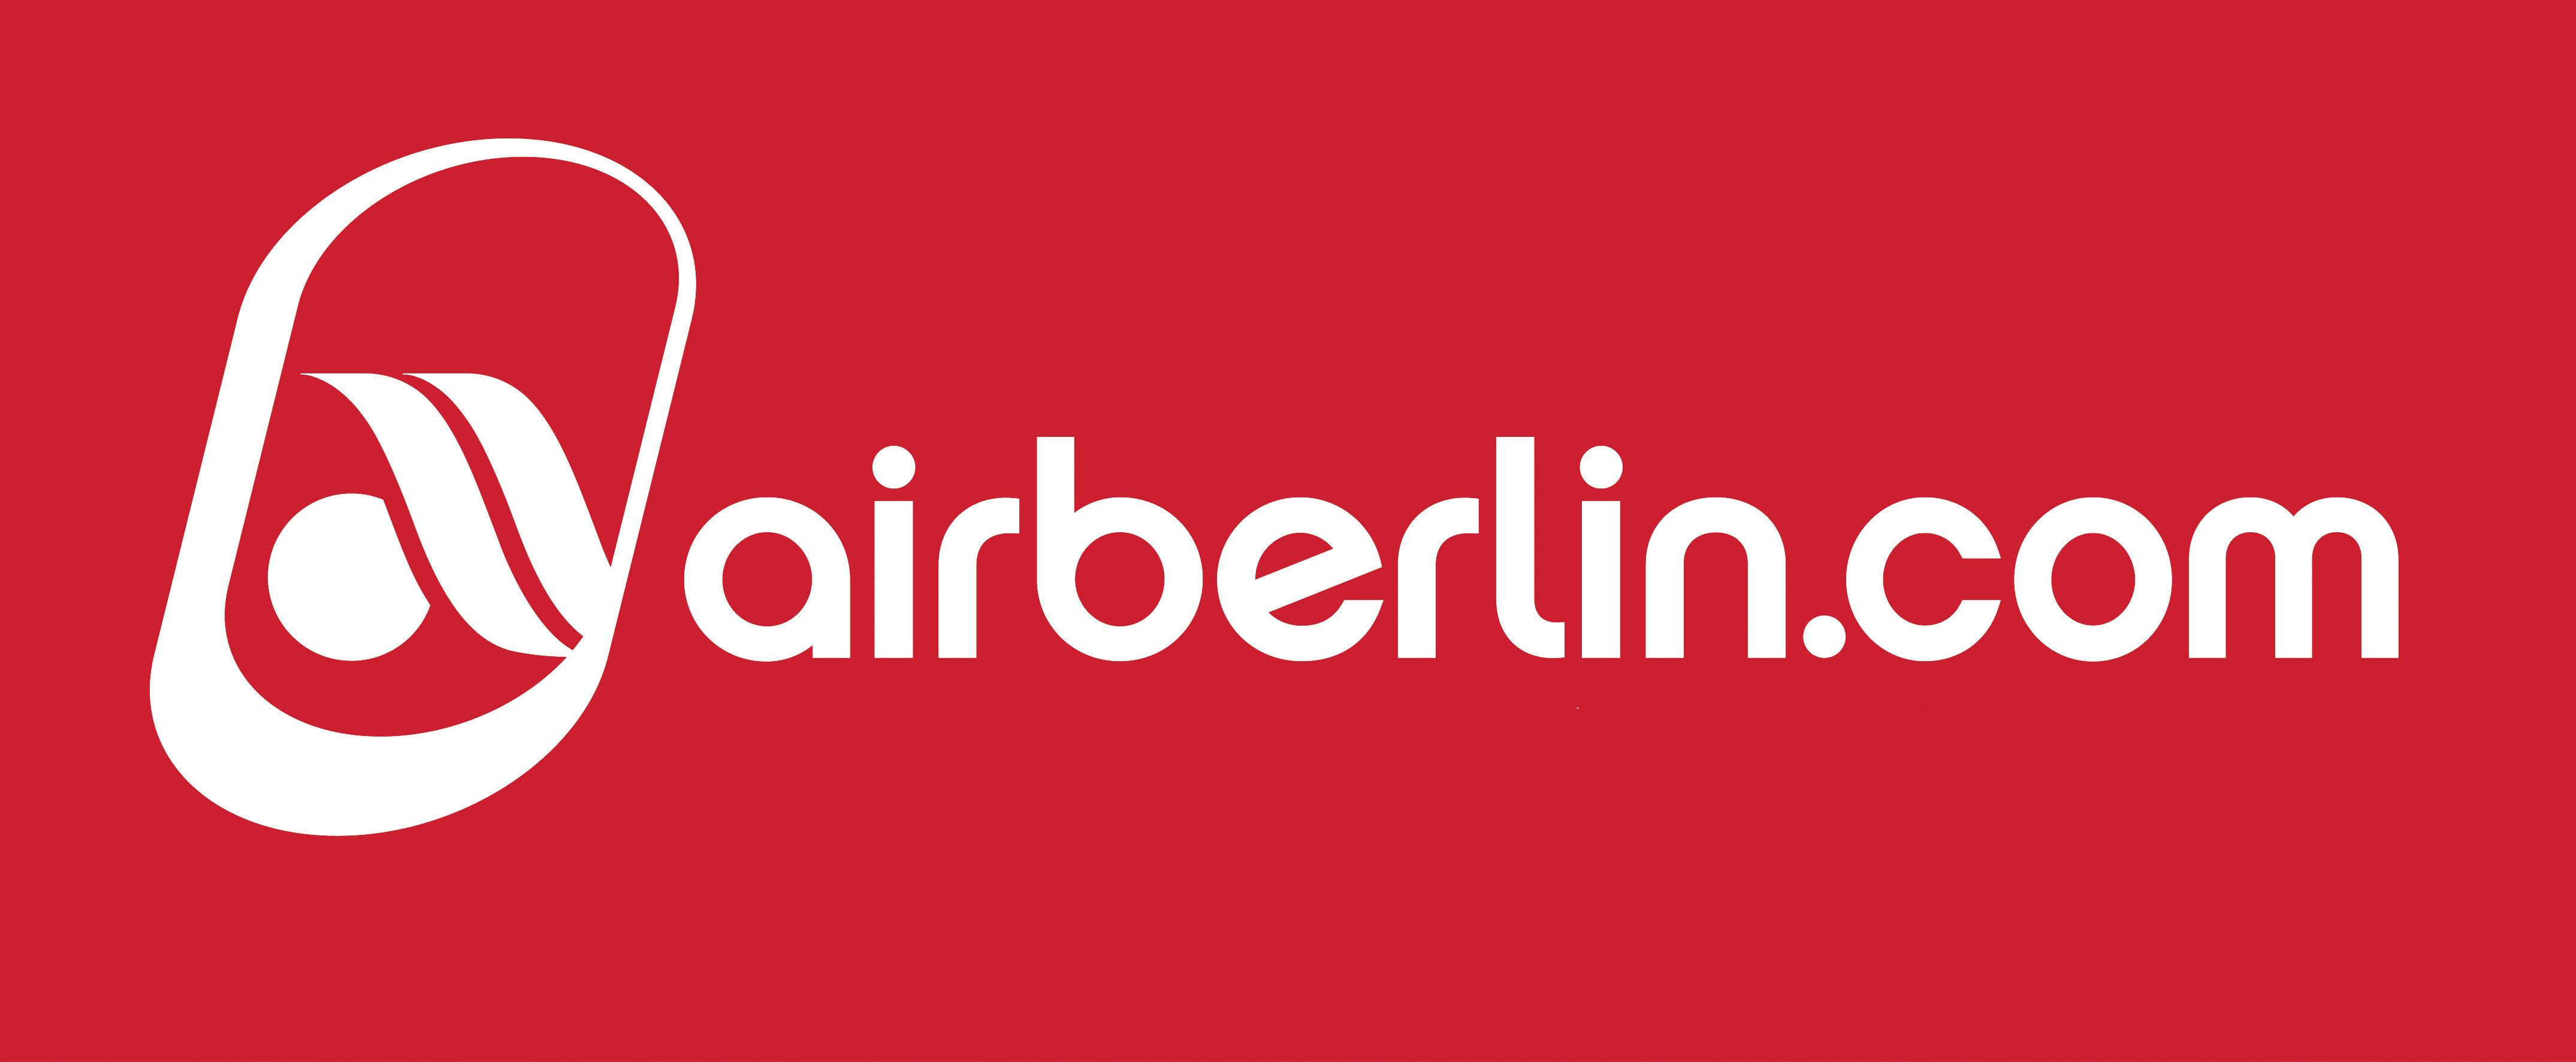 . PlusPng.com Air Berlin Air Berlin Logo Vector PlusPng.com  - Air Berlin Vector PNG